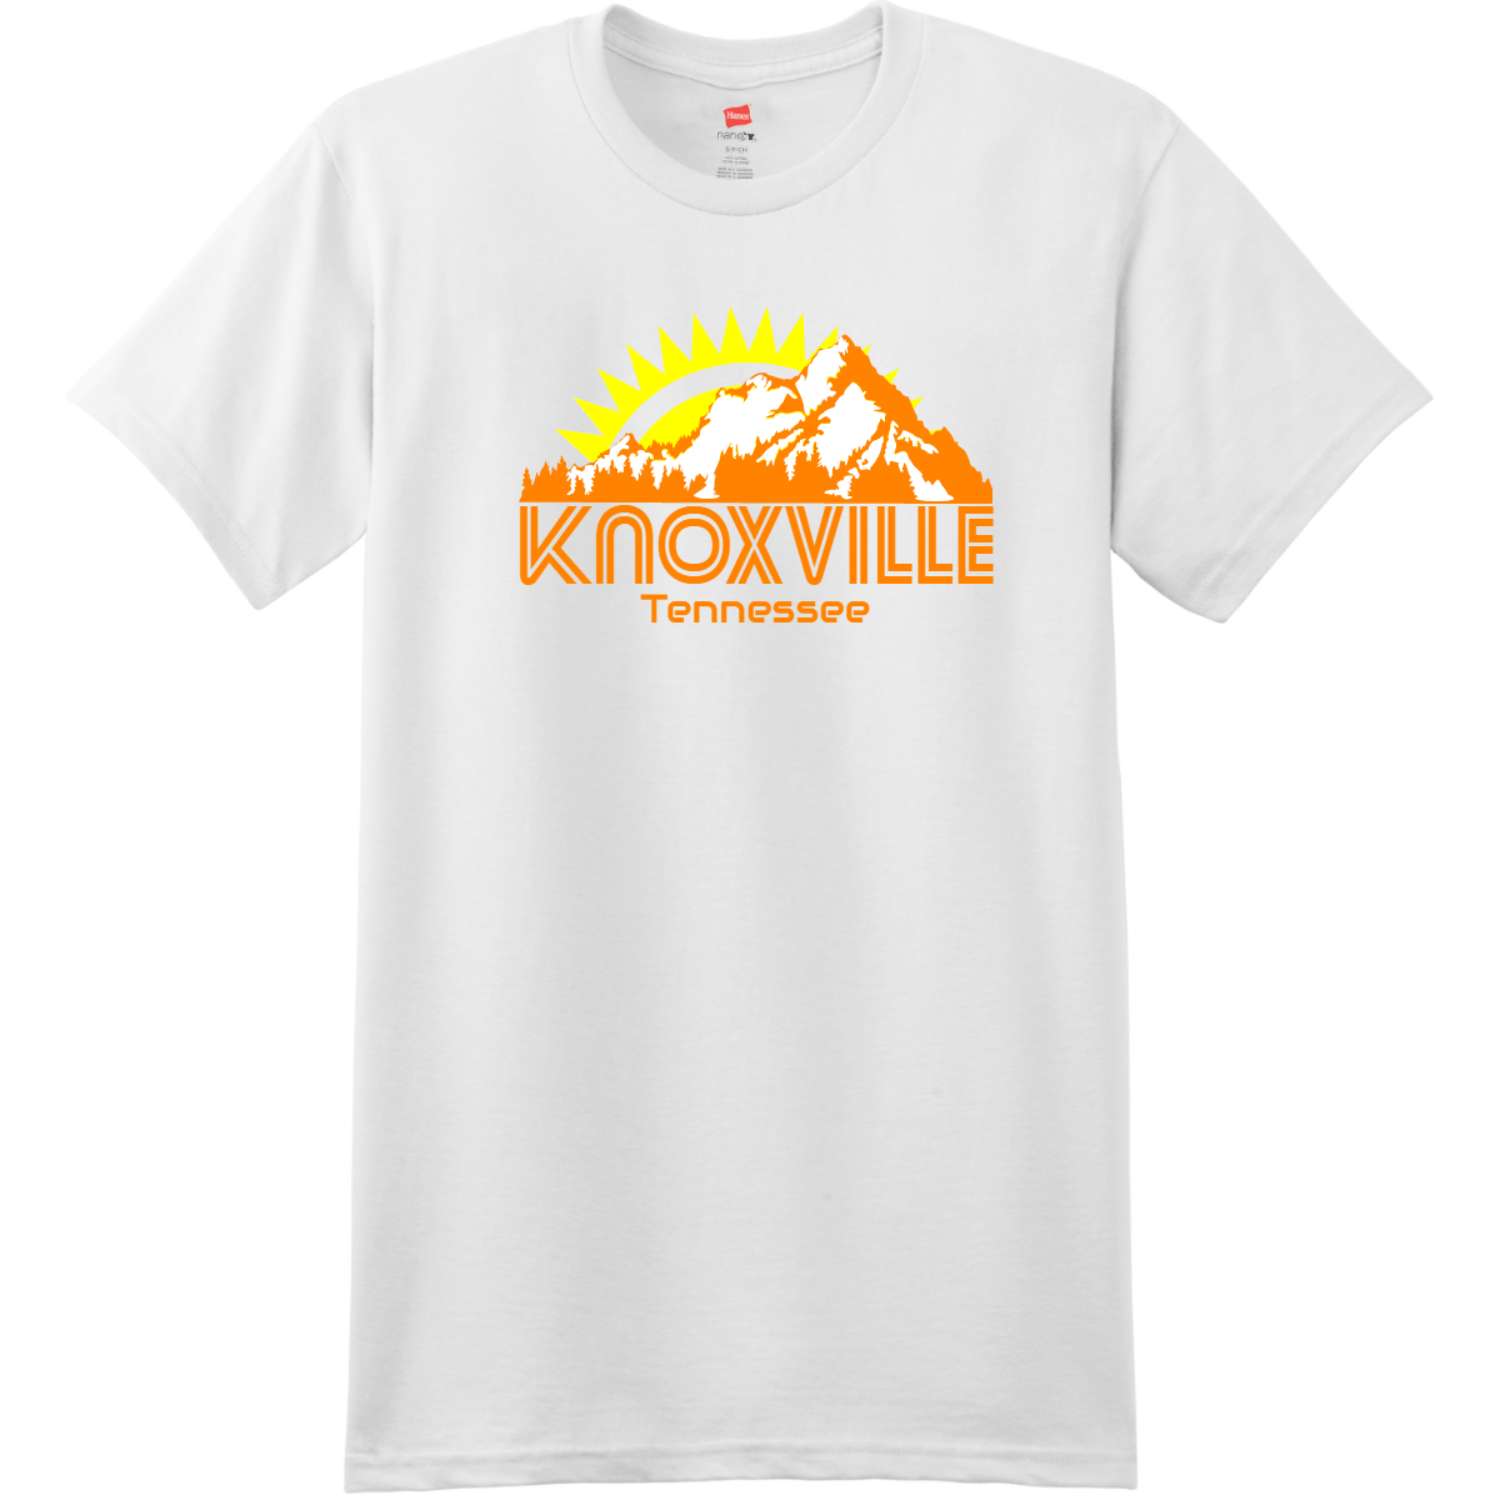 Knoxville Tennessee Mountains T Shirt White Hanes Nano 4980 Ringspun Cotton T Shirt